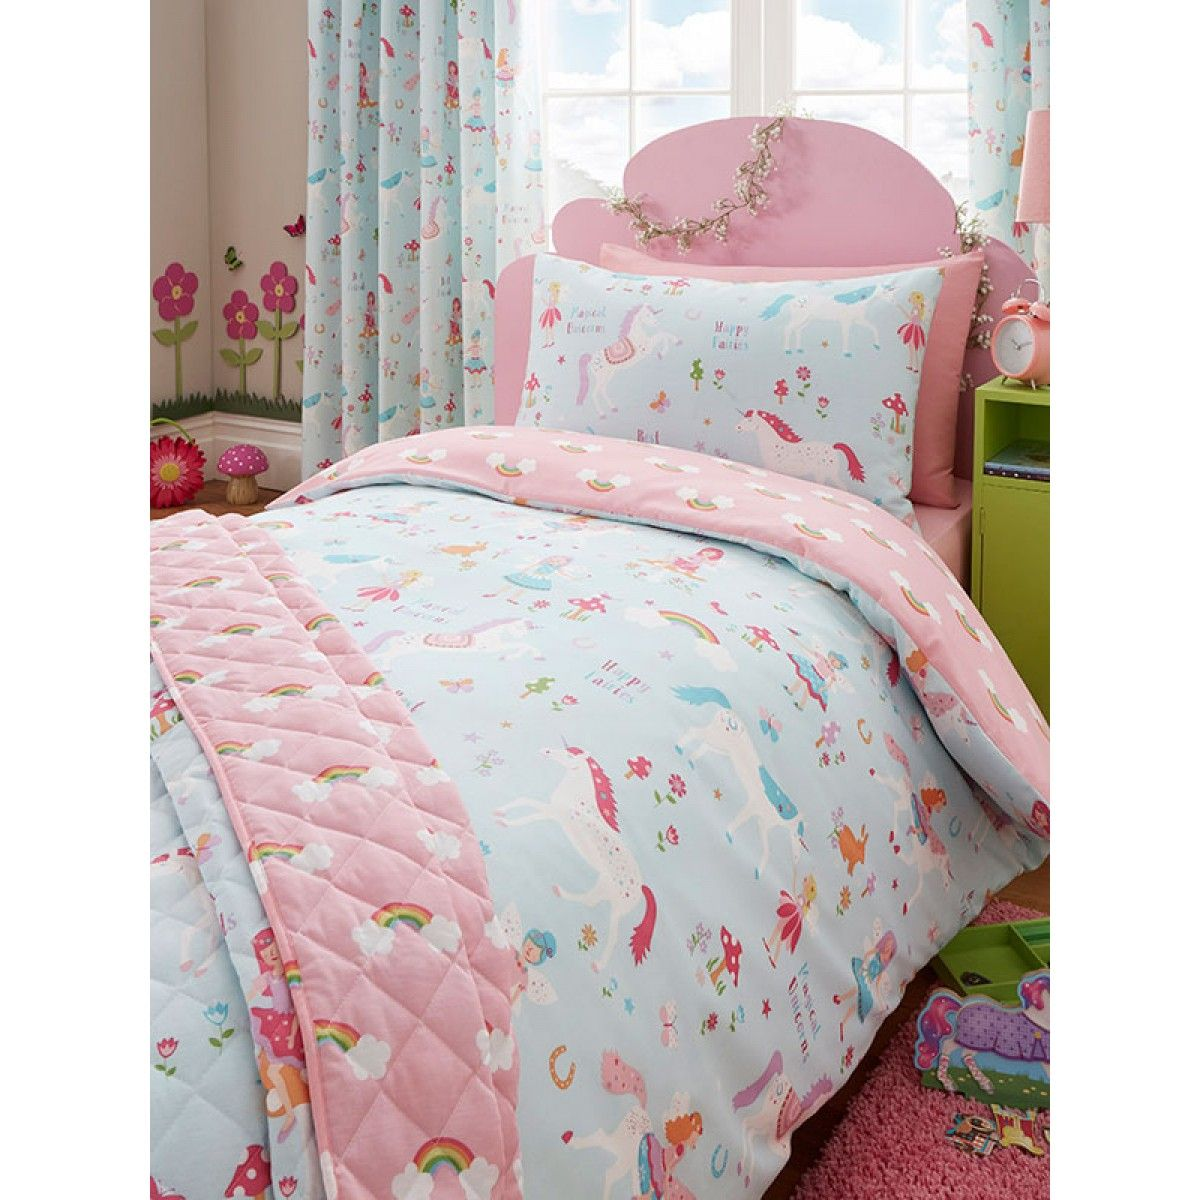 A Pretty Unicorn And Fairy Themed Bedding Set Includes 1 X Single Duvet Cover